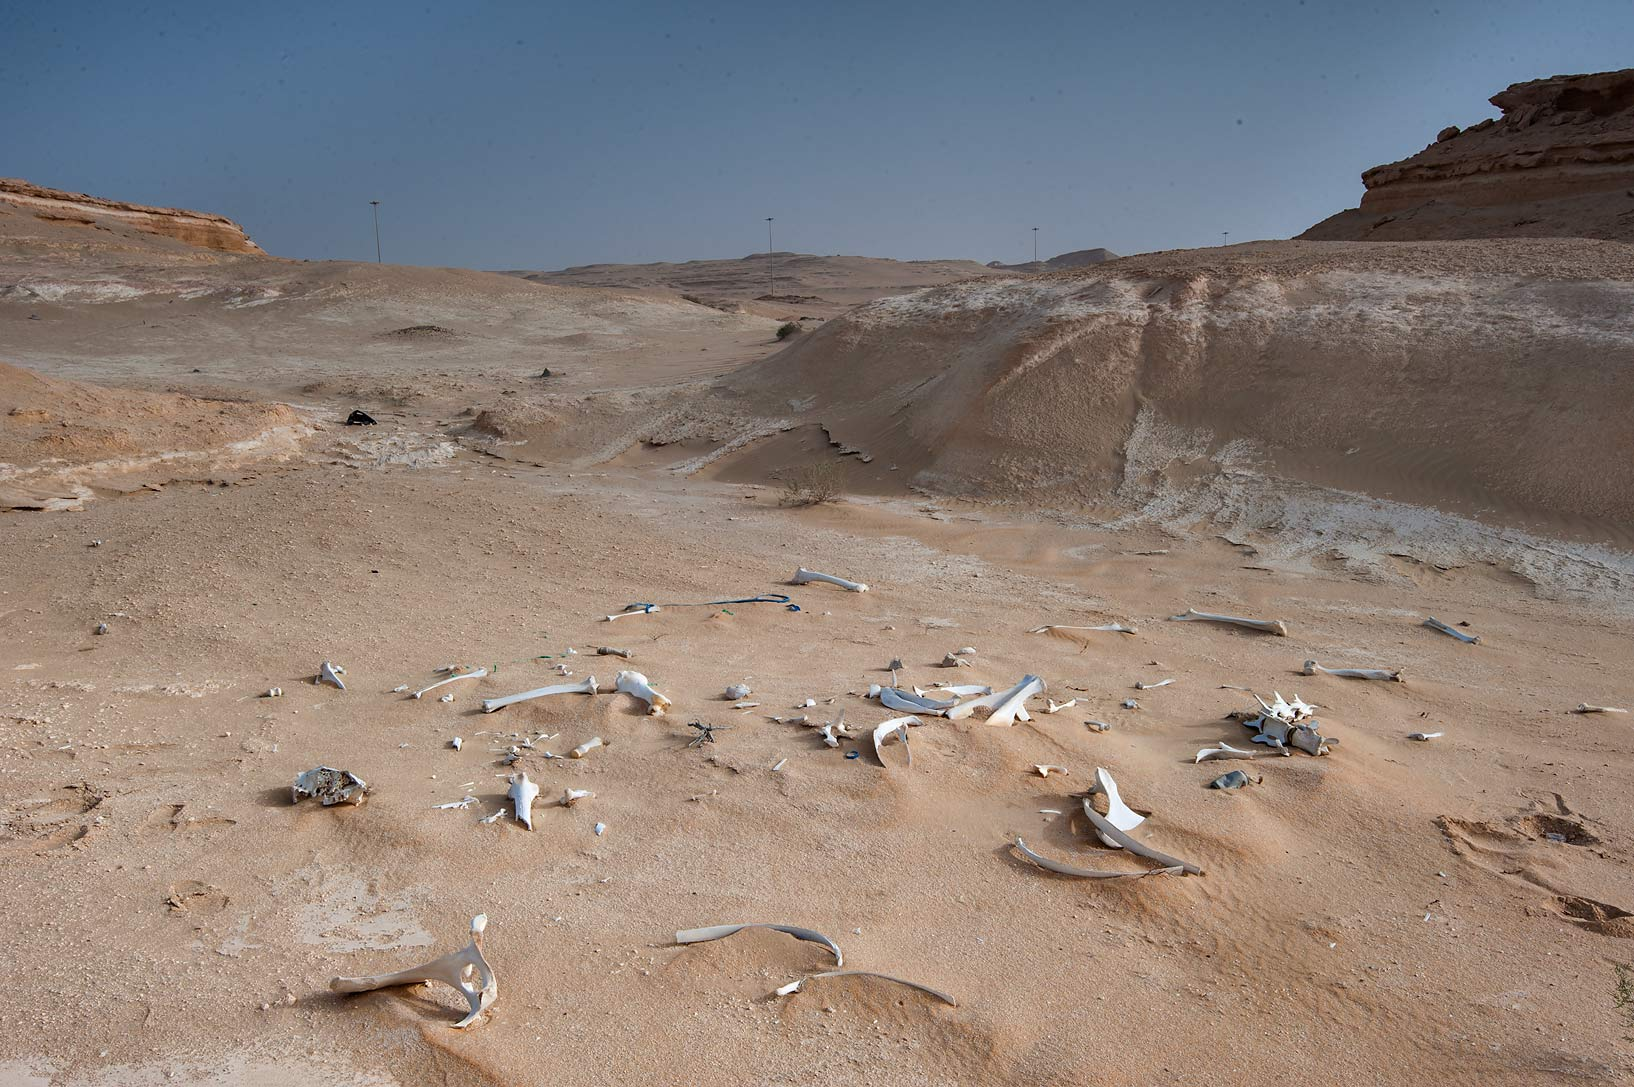 Field of camel bones near Salwa Rd. in area of Rawdat Ekdaim. Southern Qatar